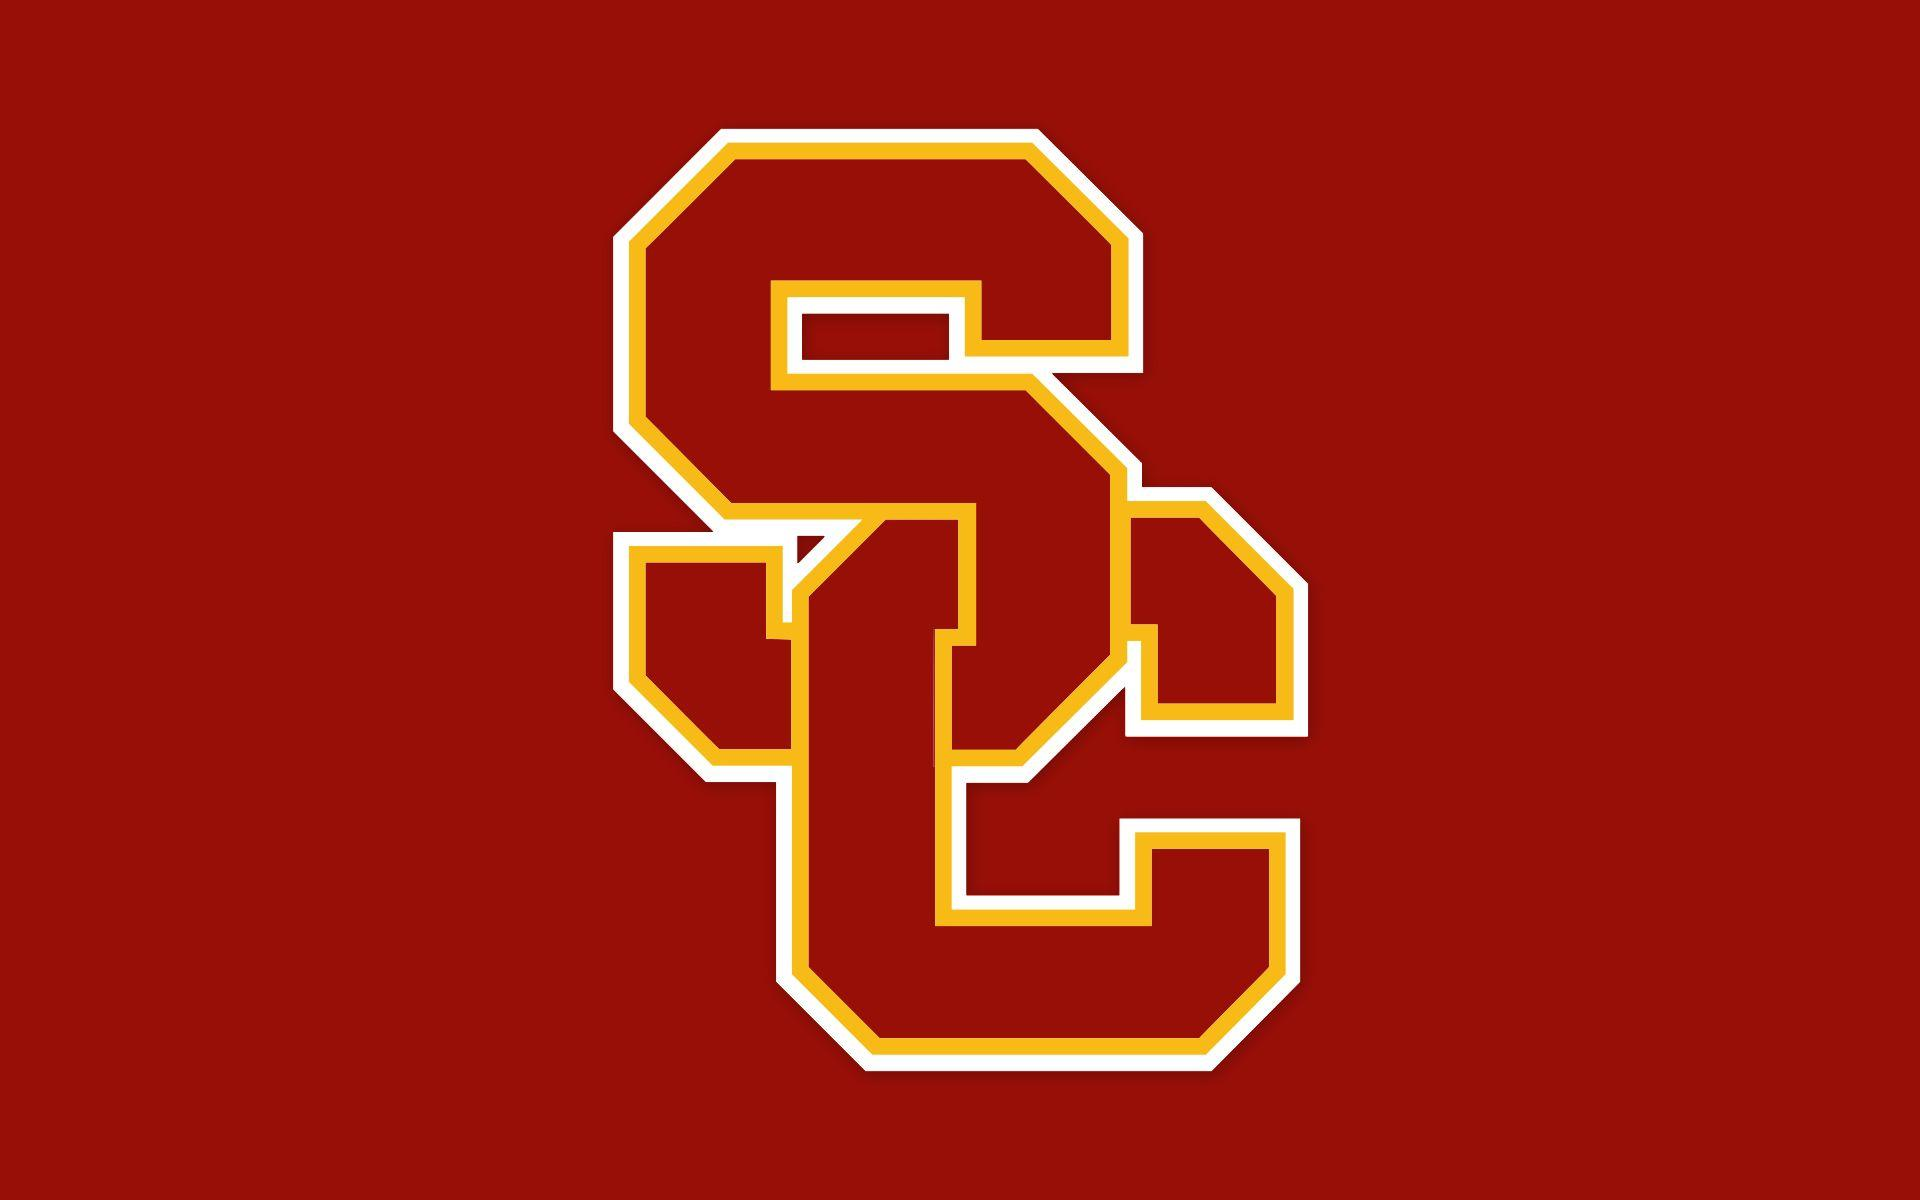 USC Trojans Wallpapers 1920x1200